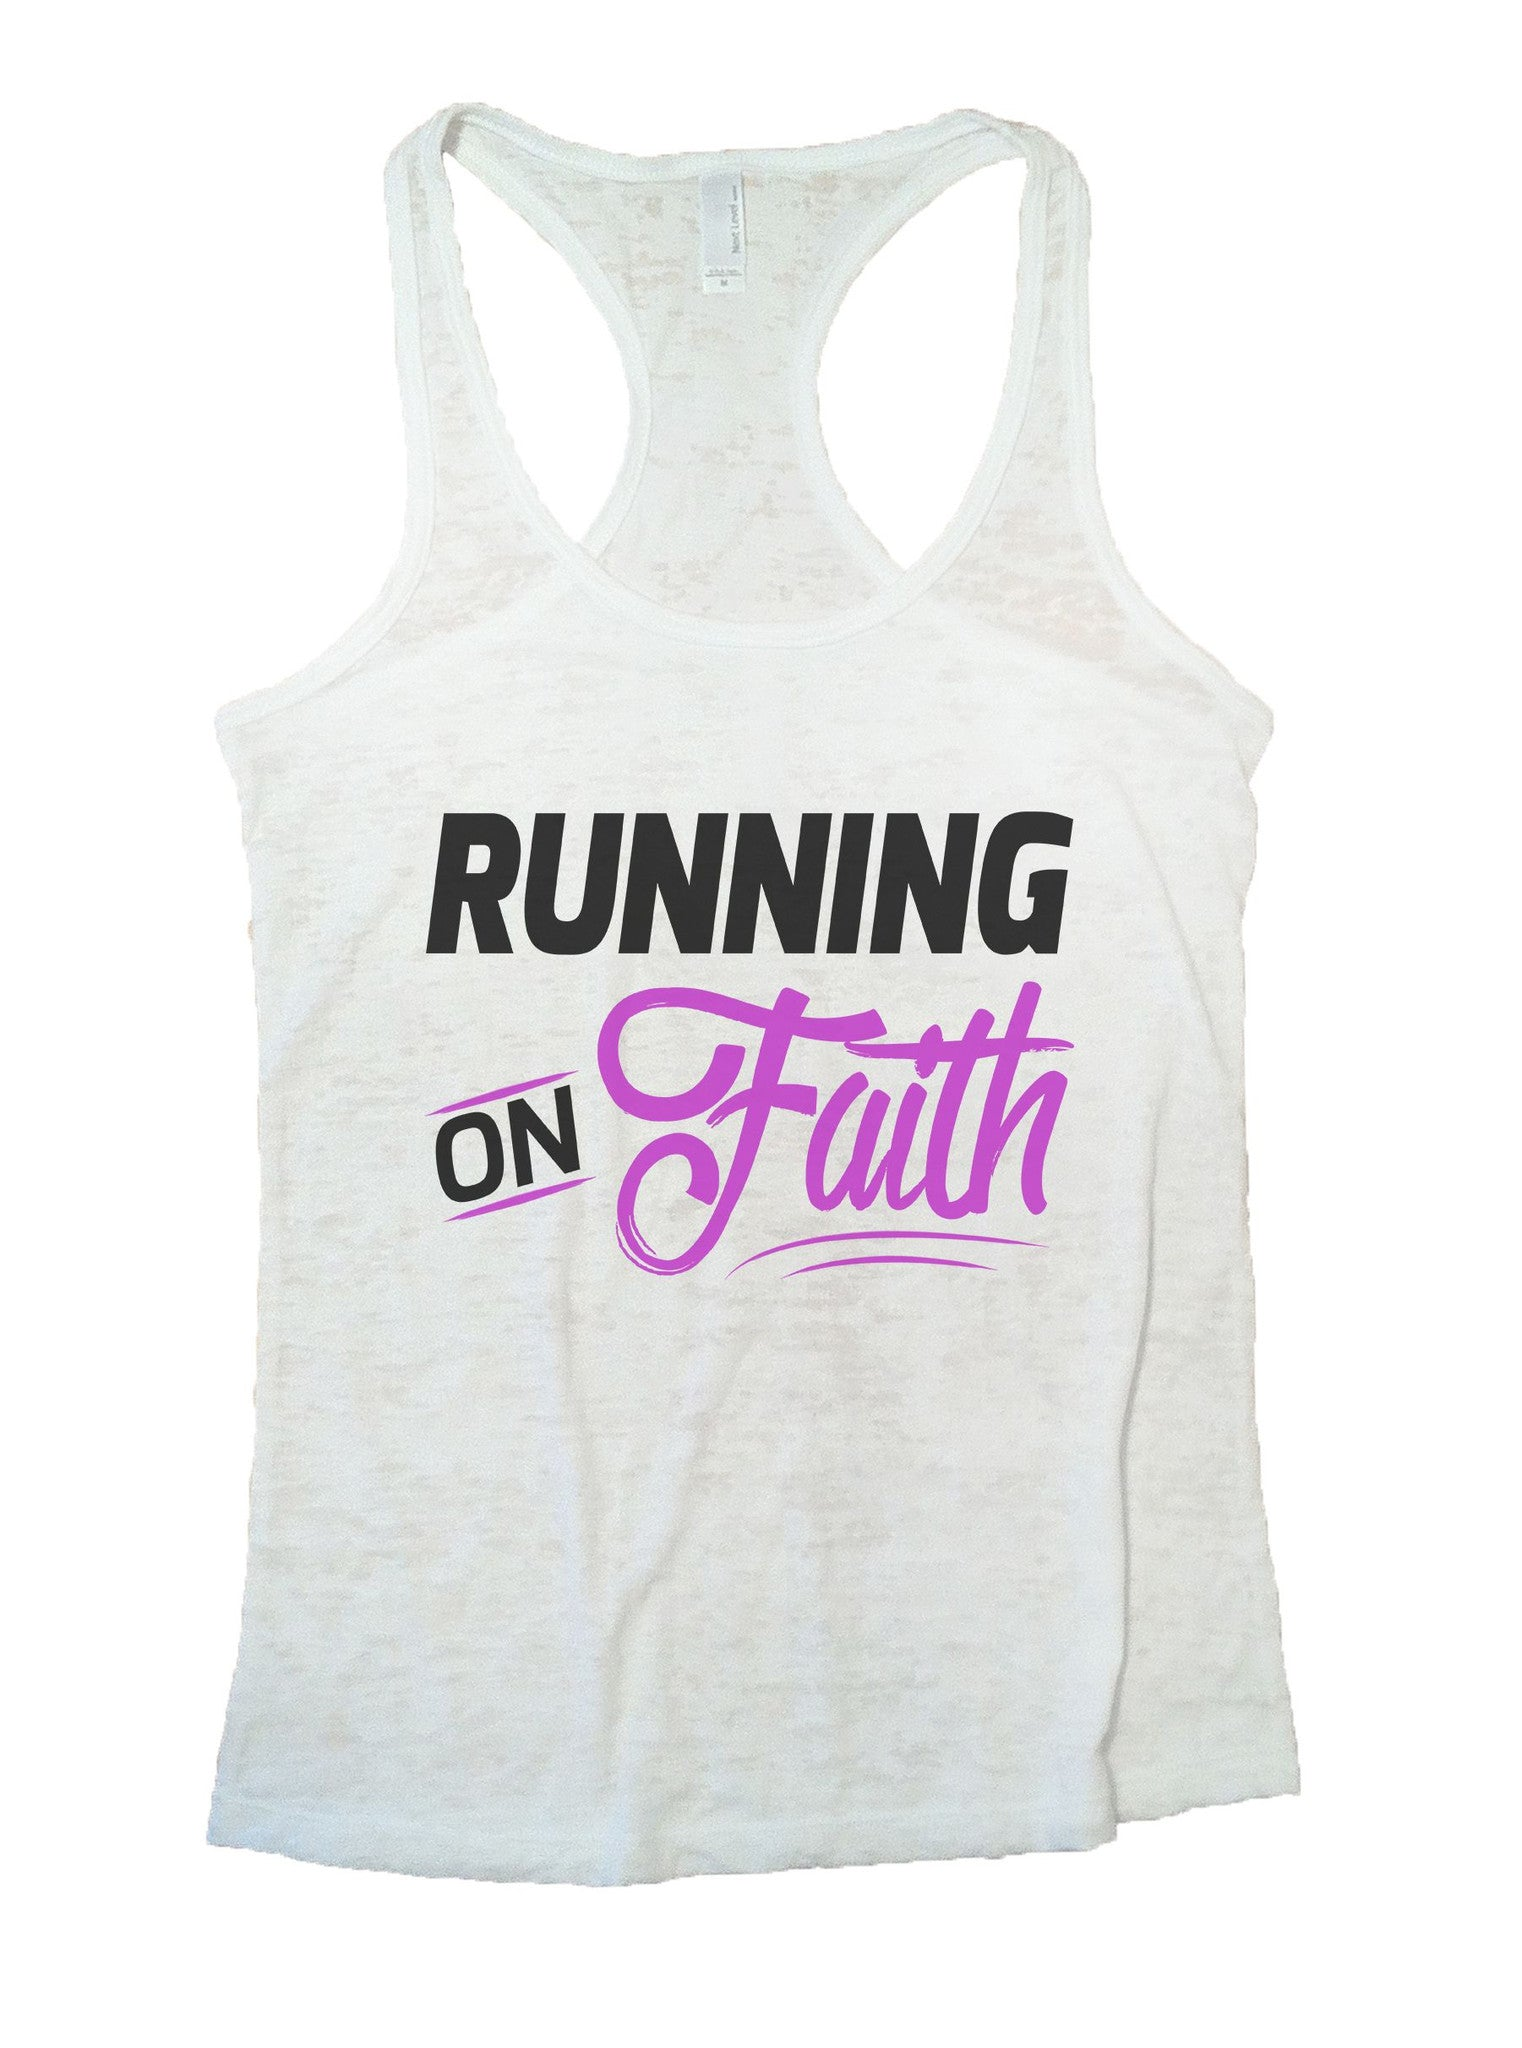 Running On Faith Burnout Tank Top By BurnoutTankTops.com - 1073 - Funny Shirts Tank Tops Burnouts and Triblends  - 6